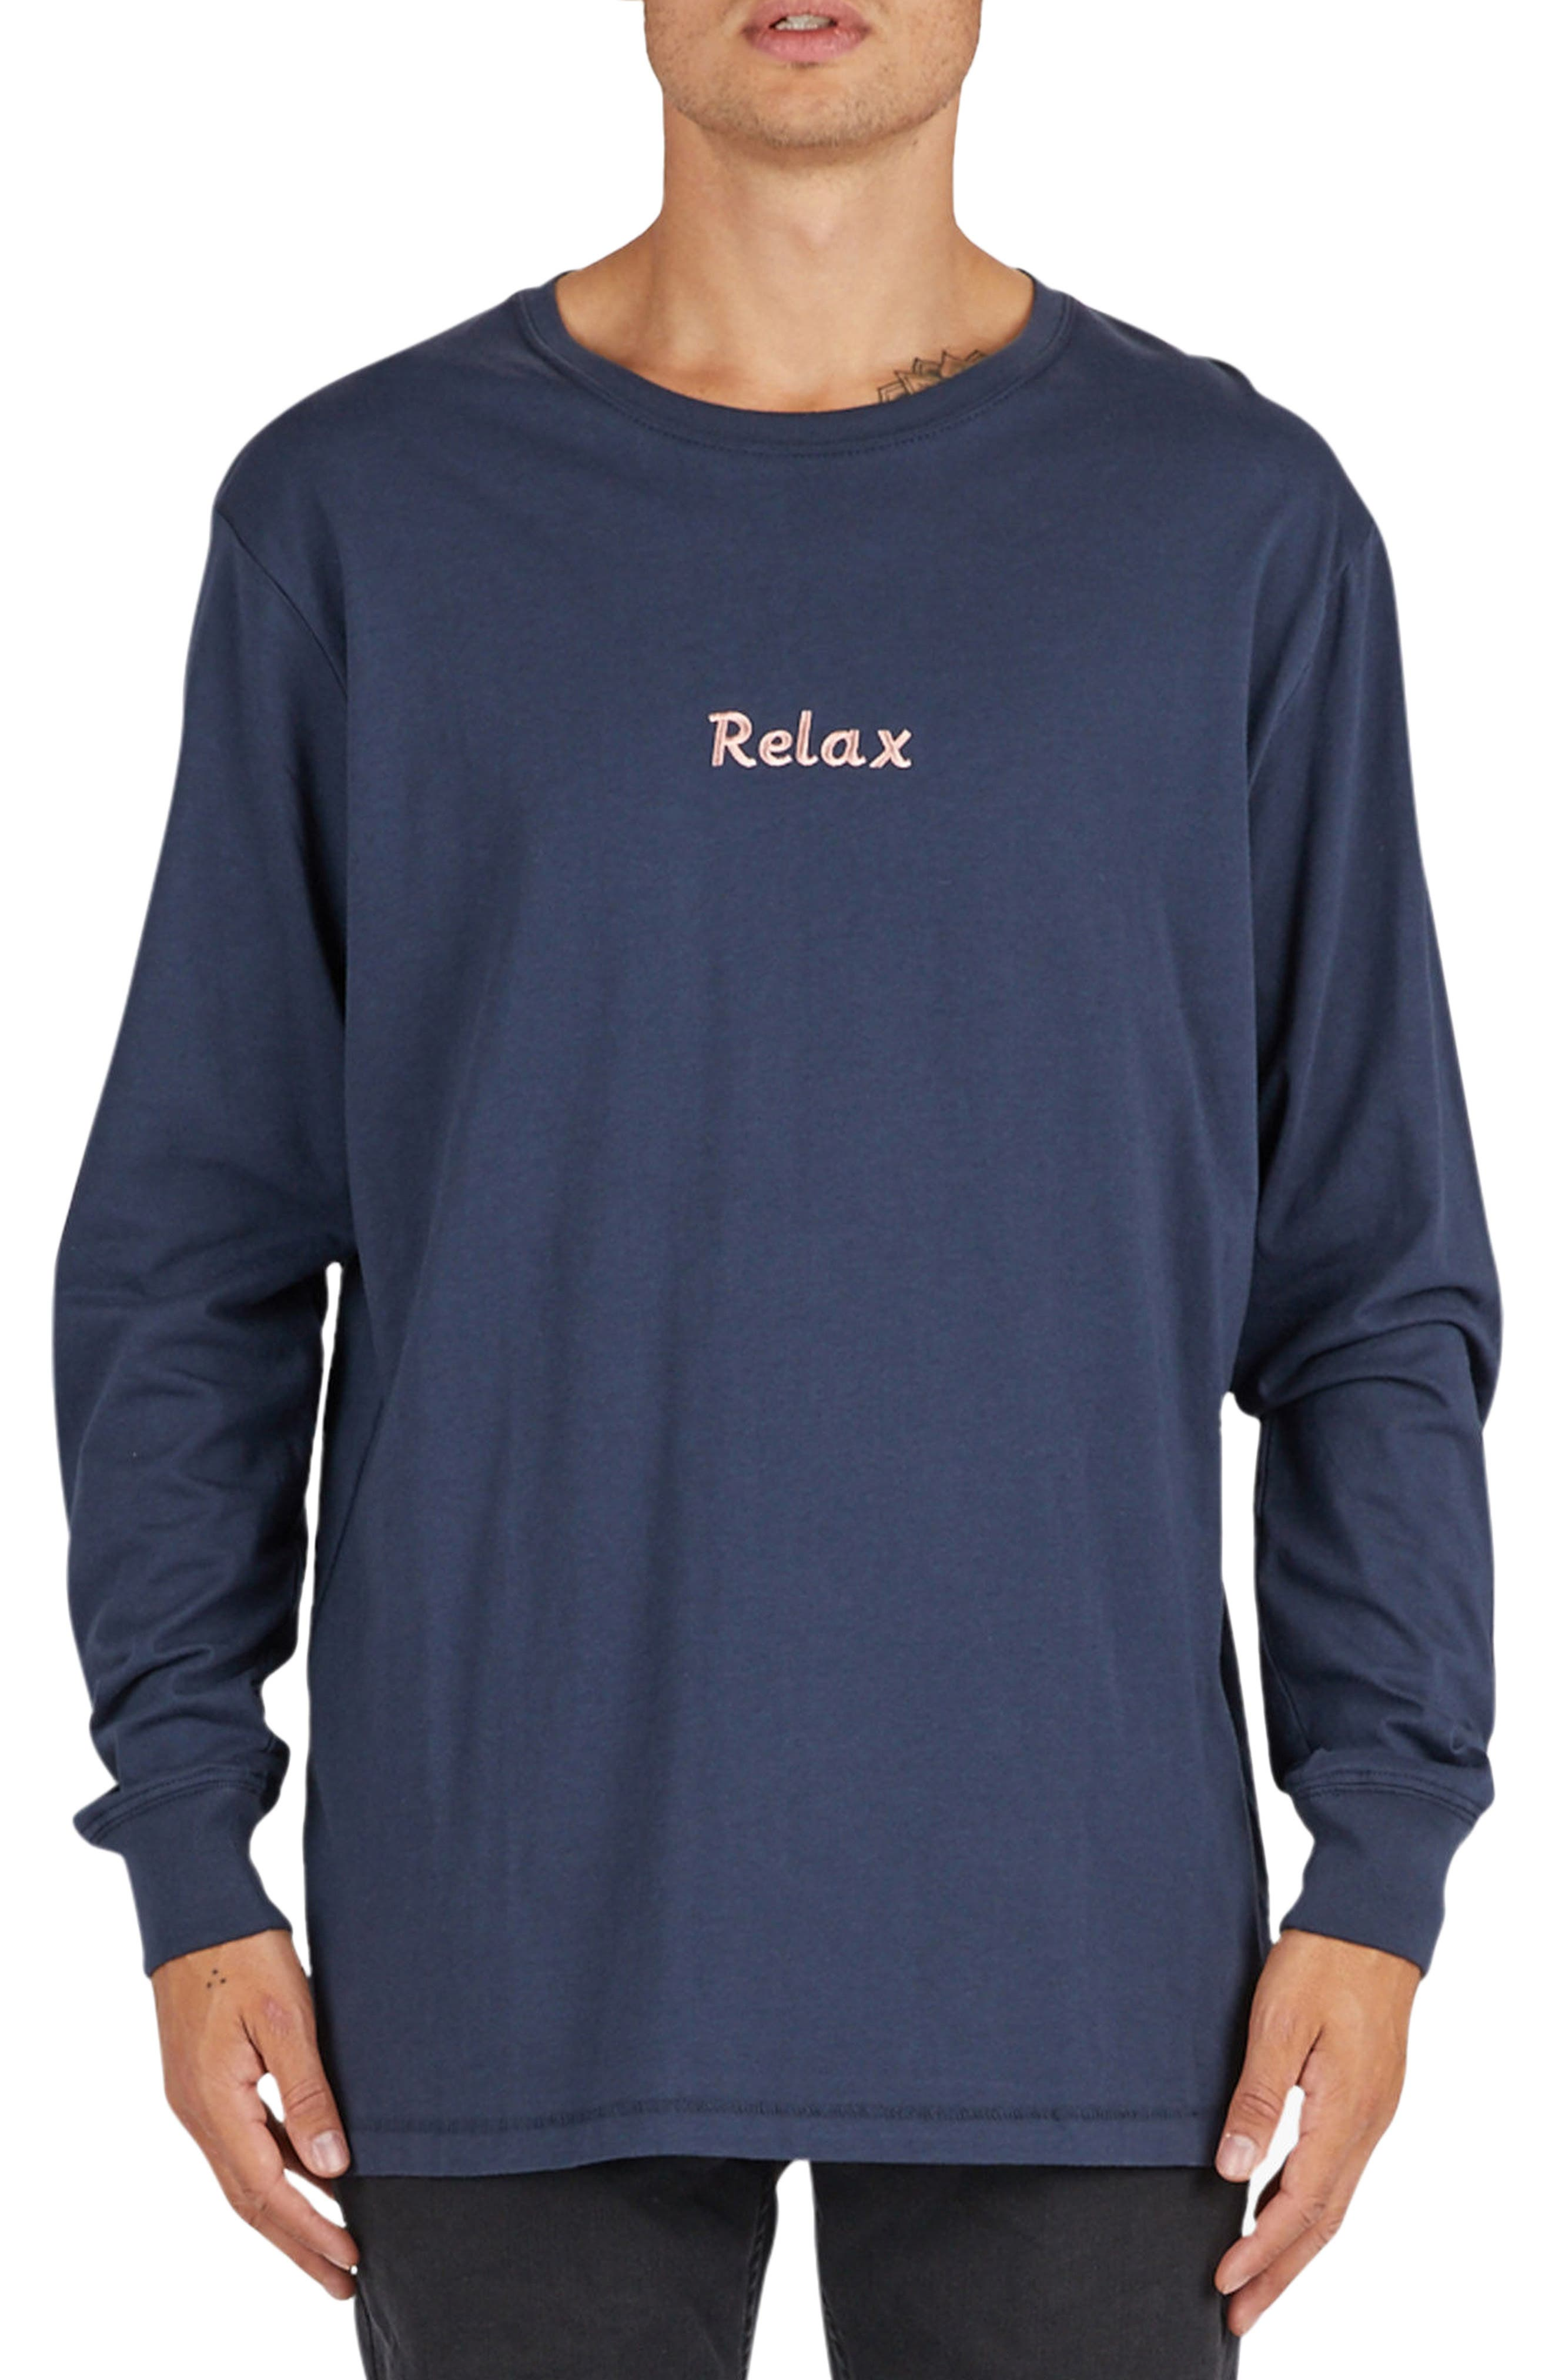 Relax Embroidered Long Sleeve T-Shirt,                             Main thumbnail 1, color,                             415